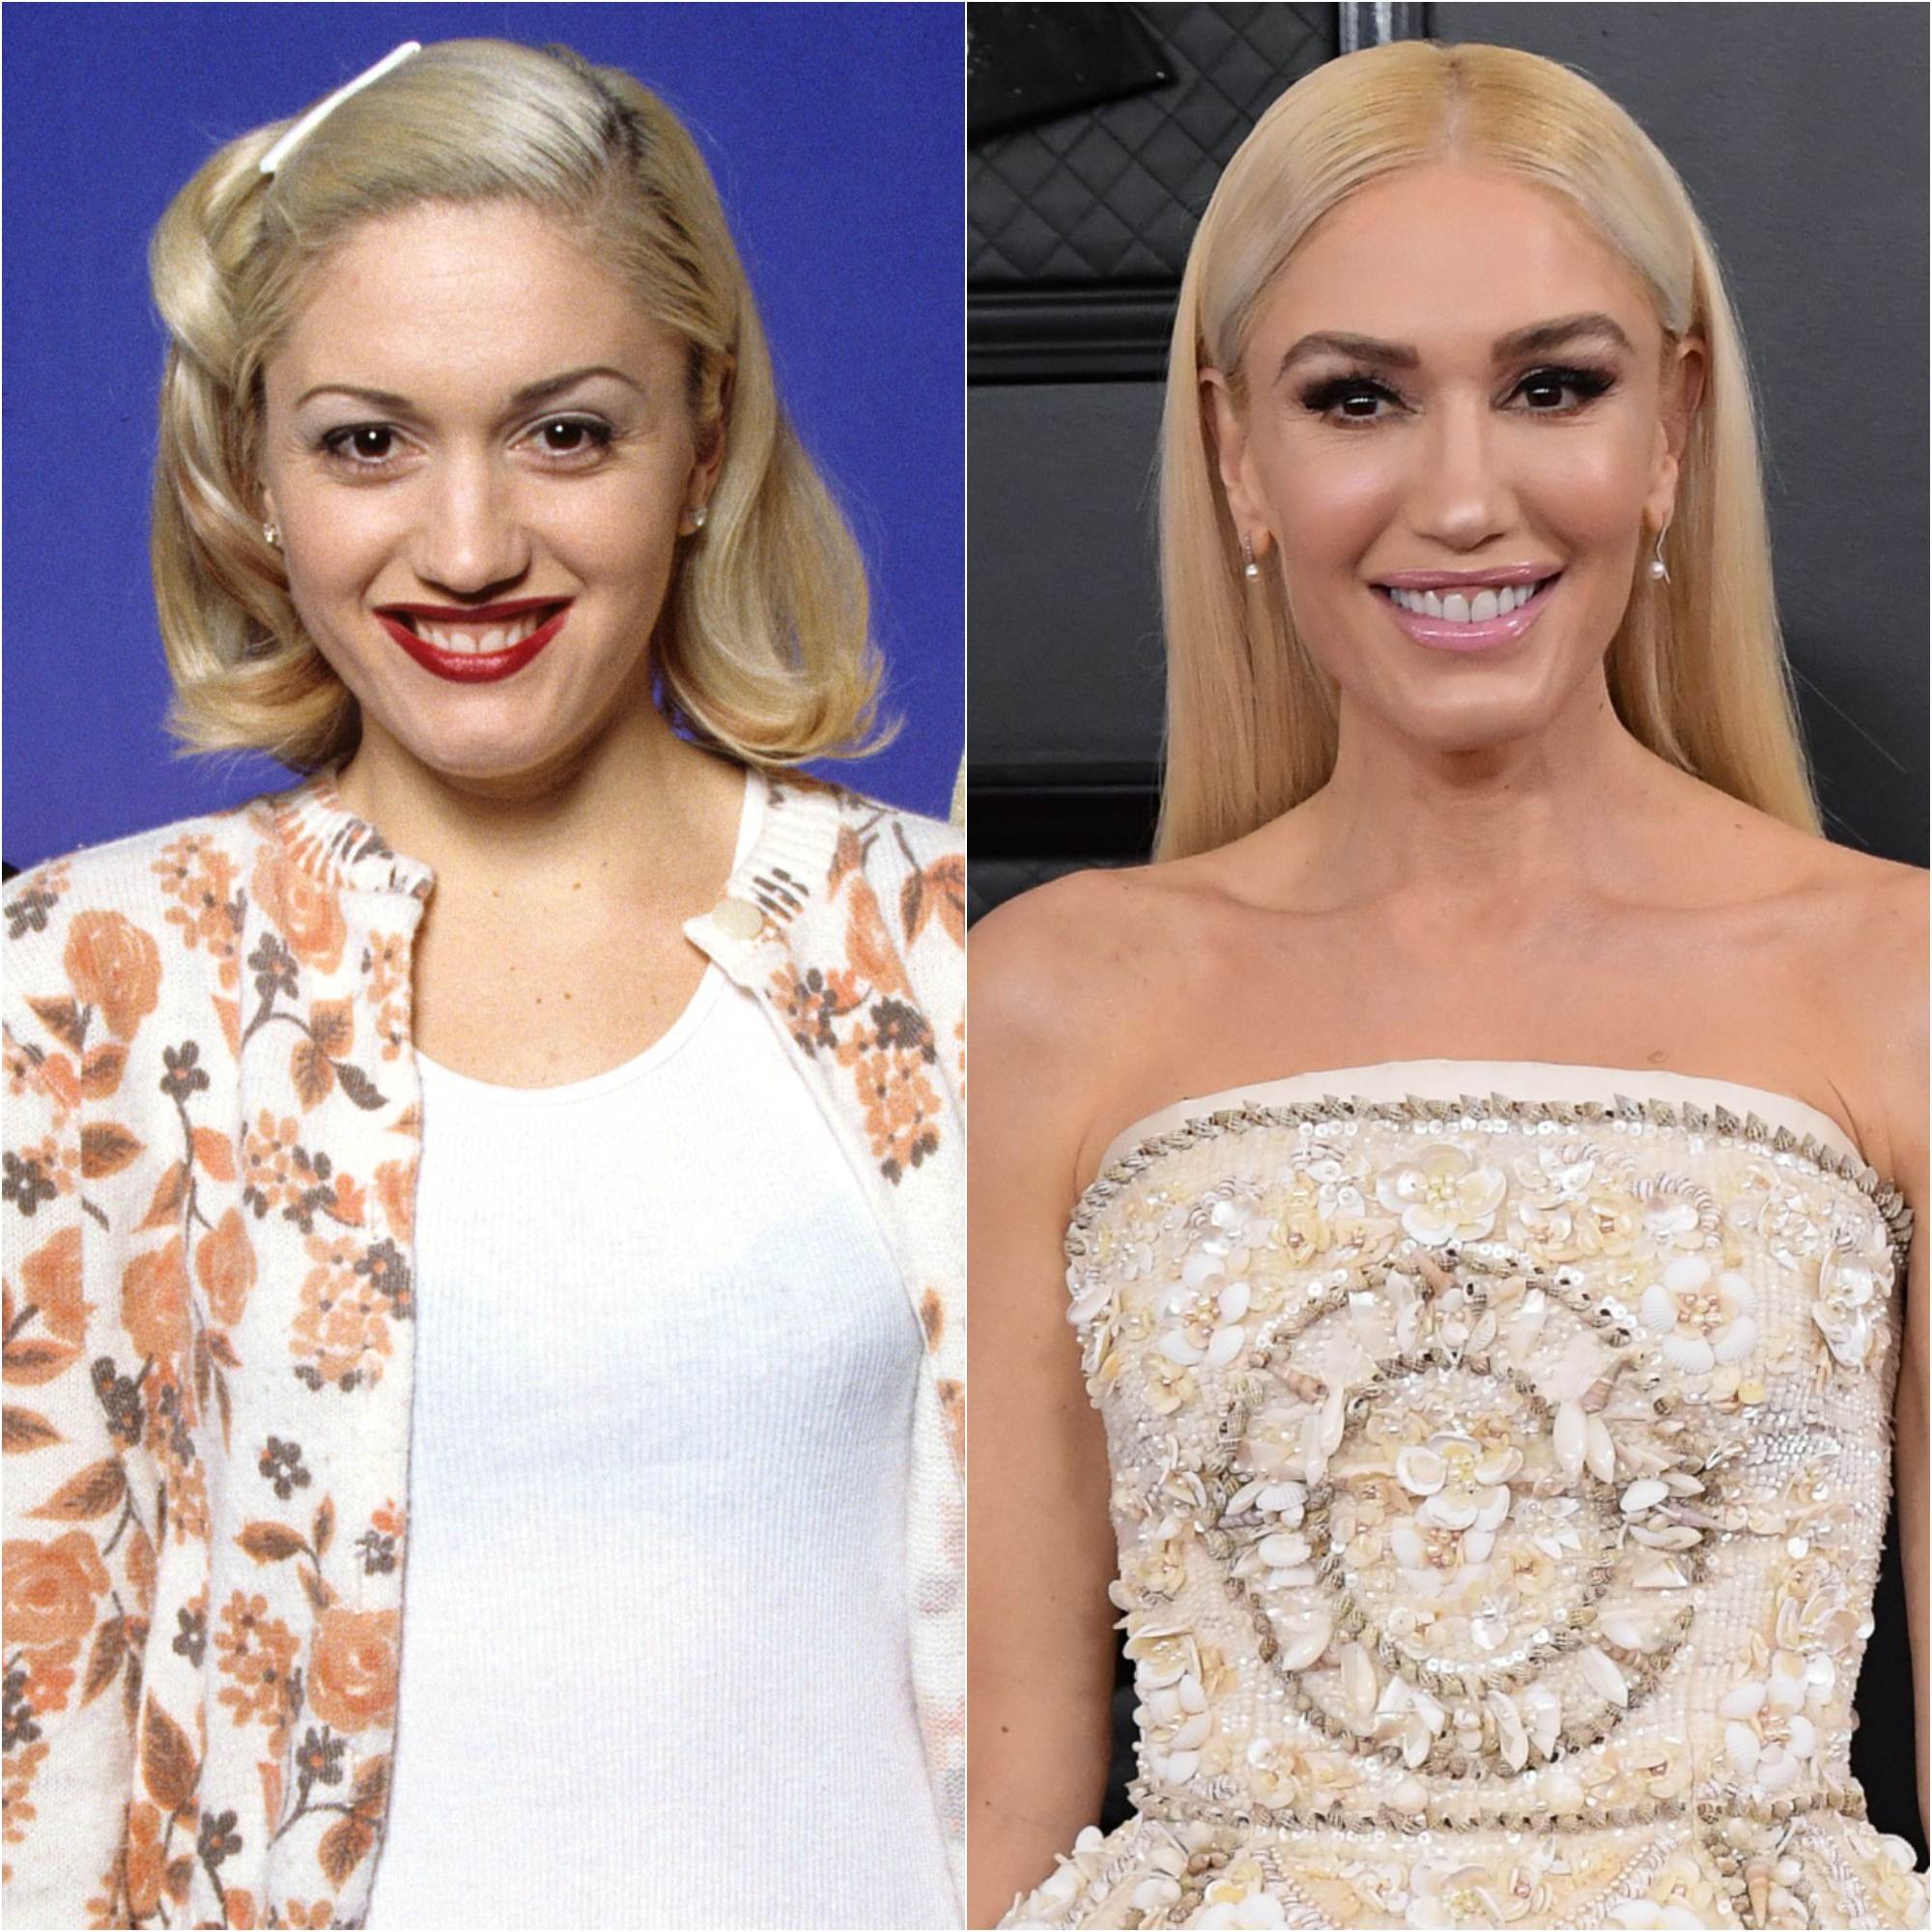 Has Gwen Stefani Had Plastic Surgery? See What Experts Think